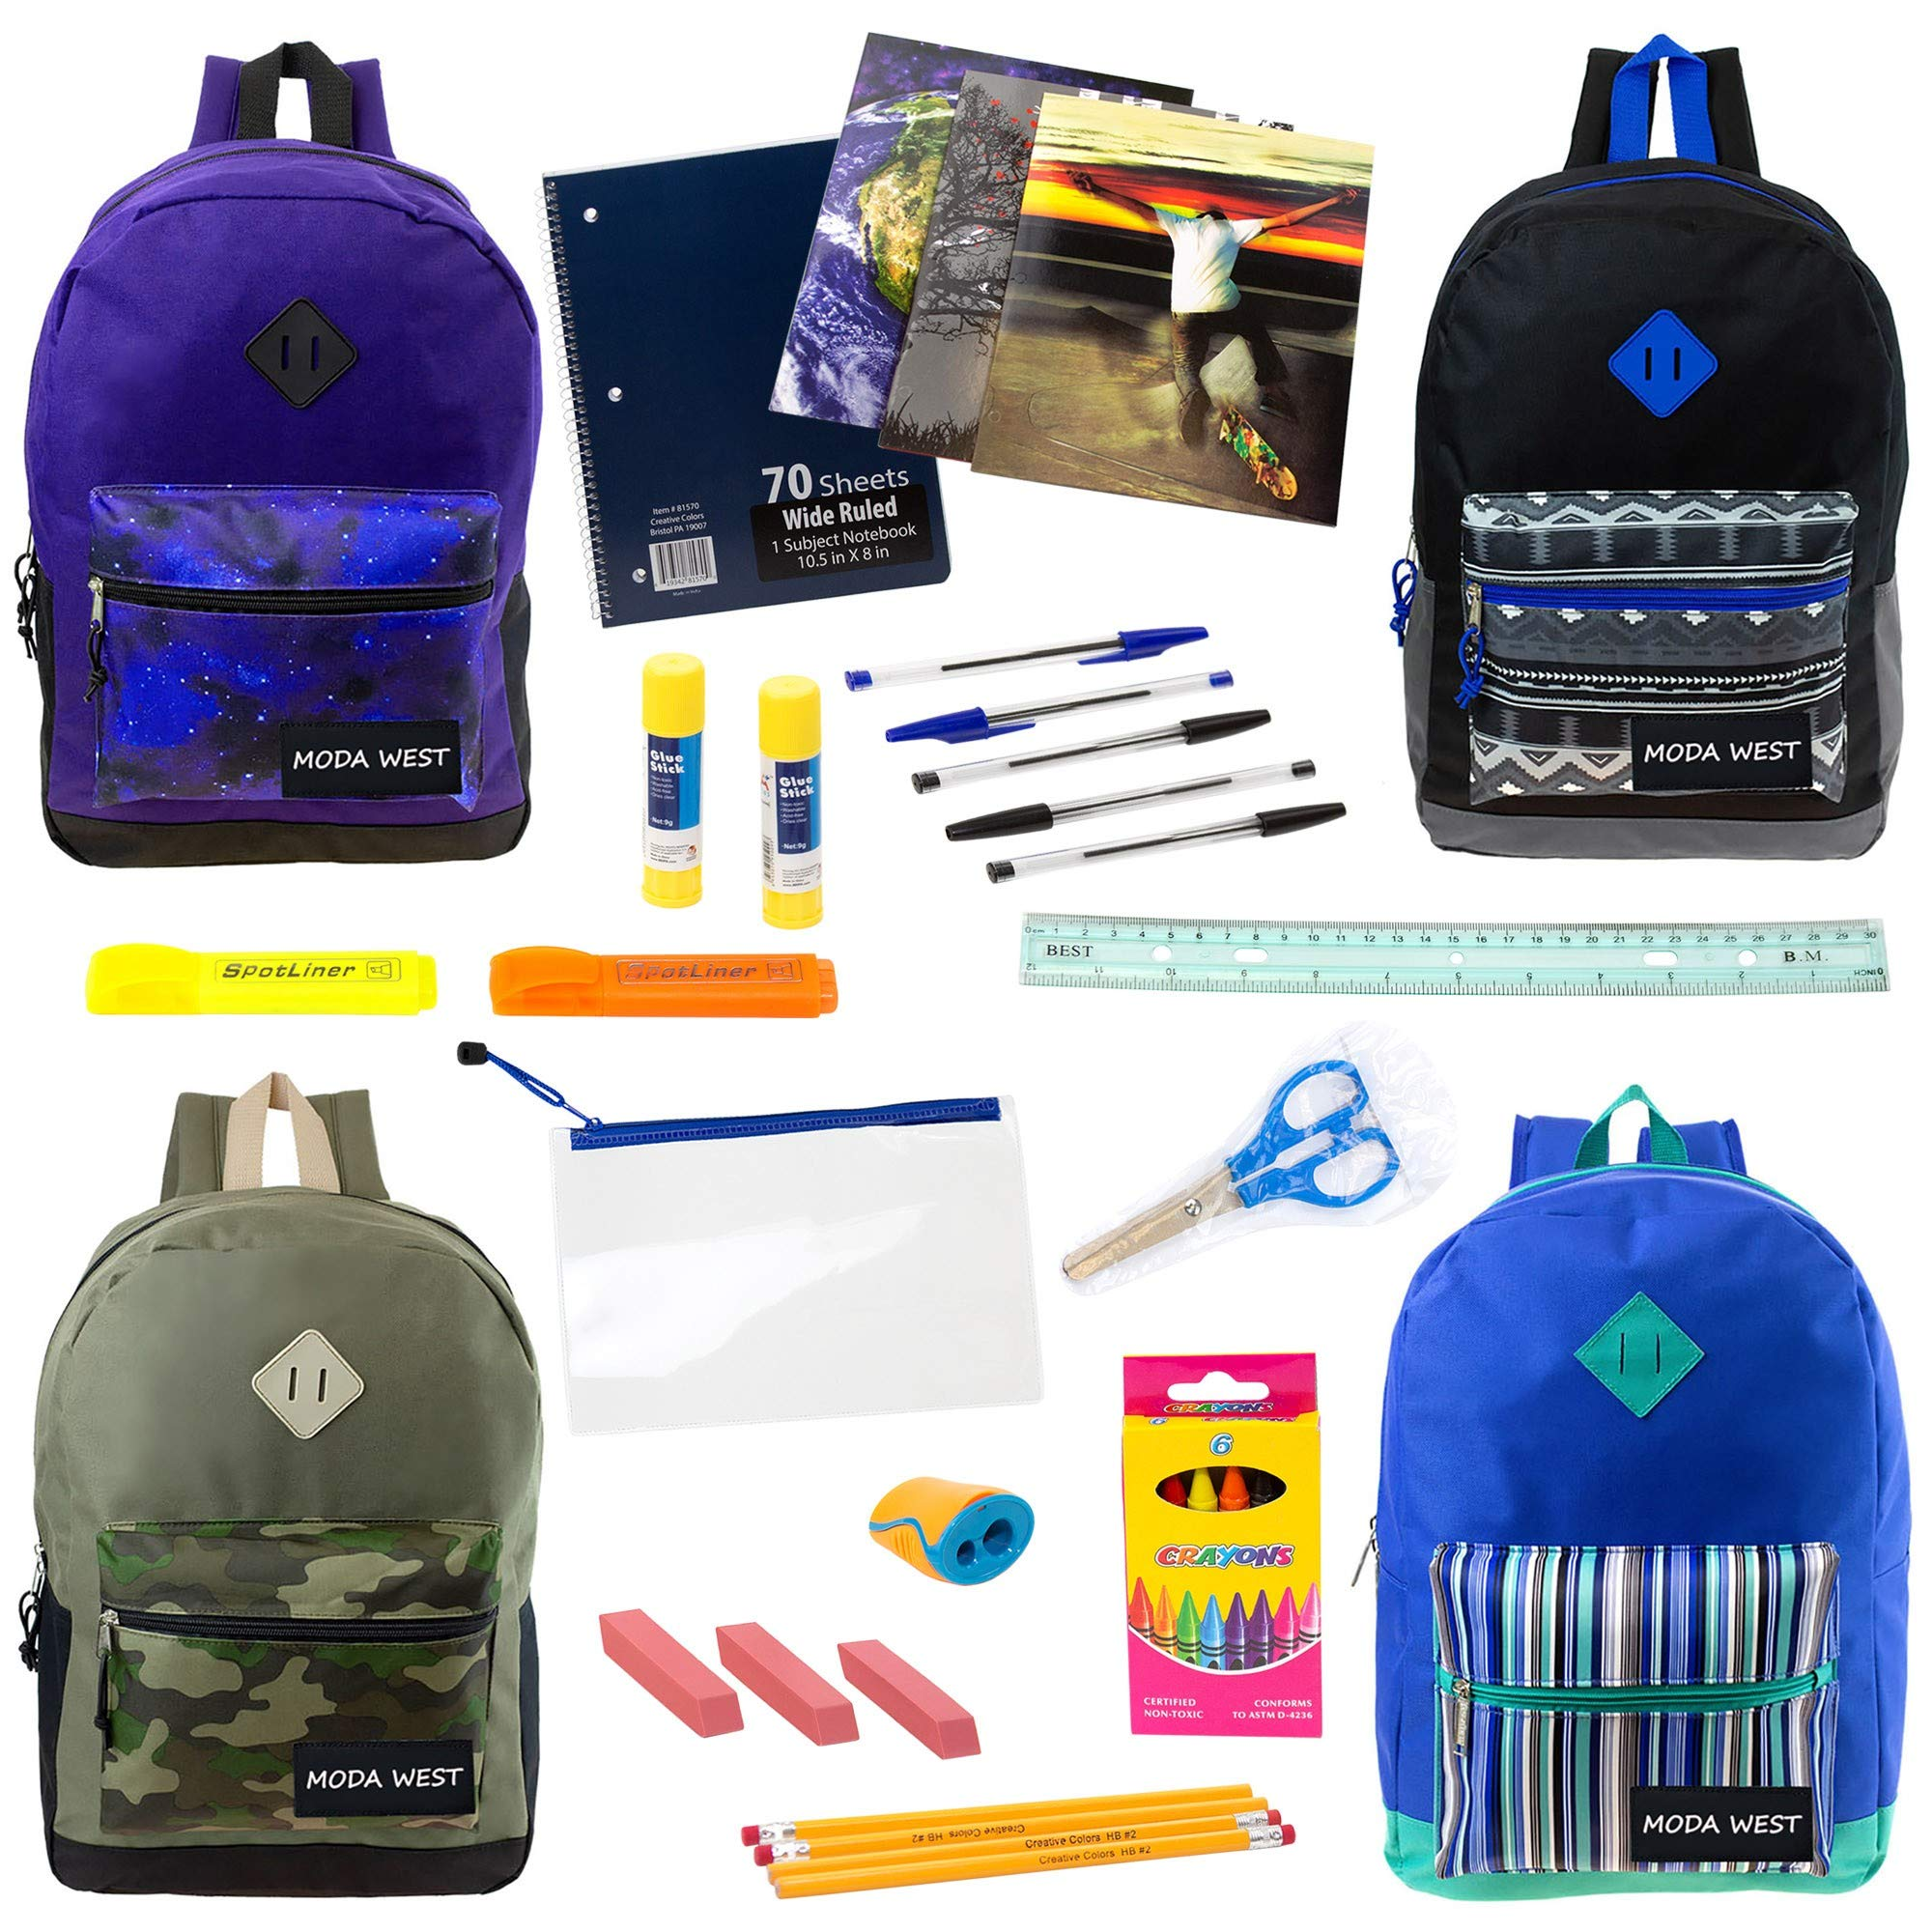 17'' Wholesale Backpacks in 4 Assorted Prints with 24 Piece School Supply Kit - Bulk Case of 12